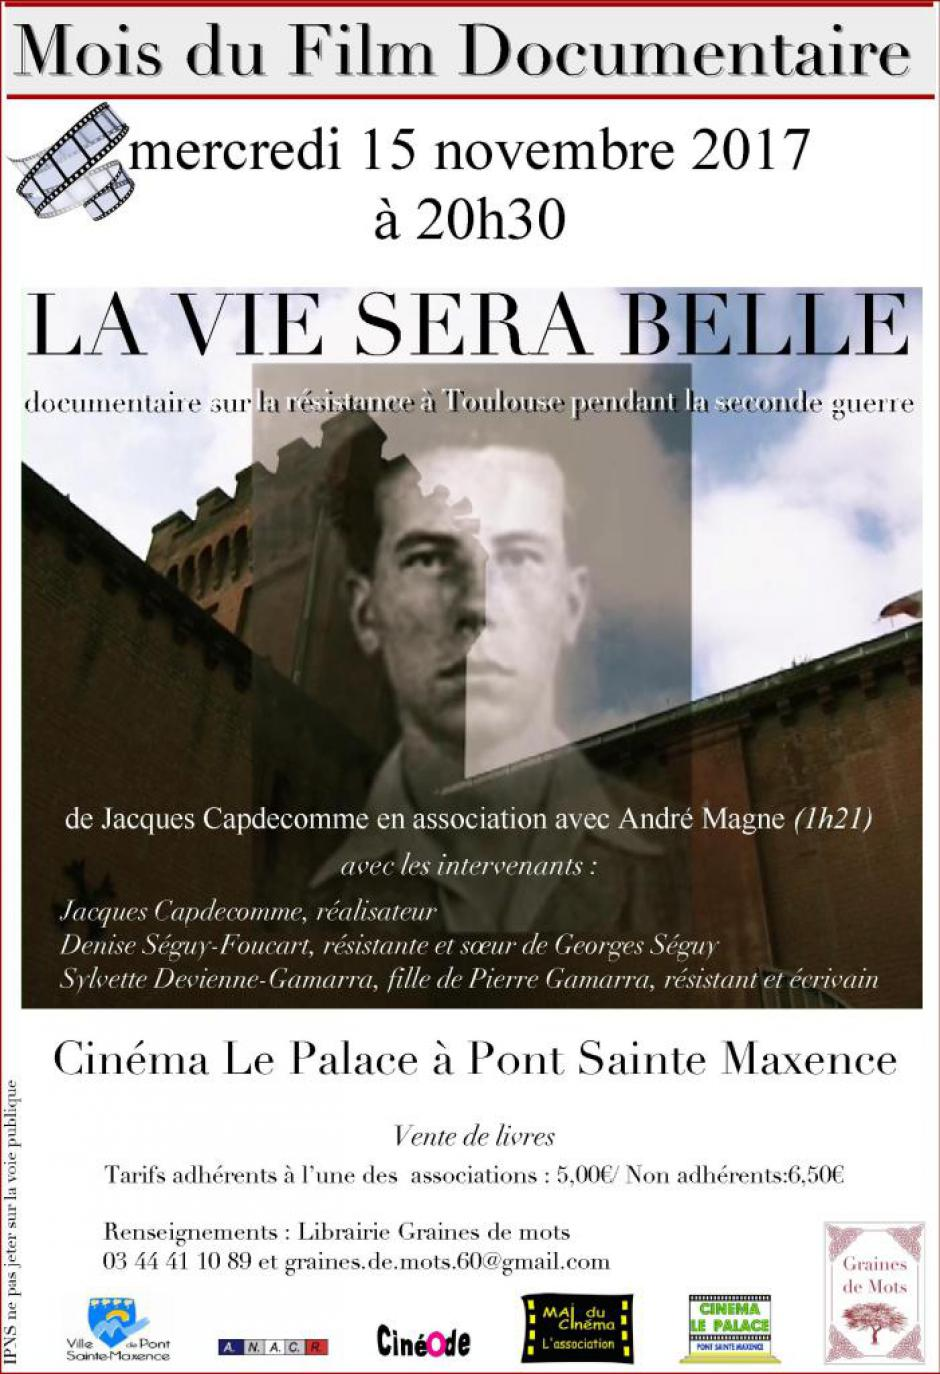 15 novembre, Pont-Sainte-Maxence - Projection-échanges « La vie sera belle »